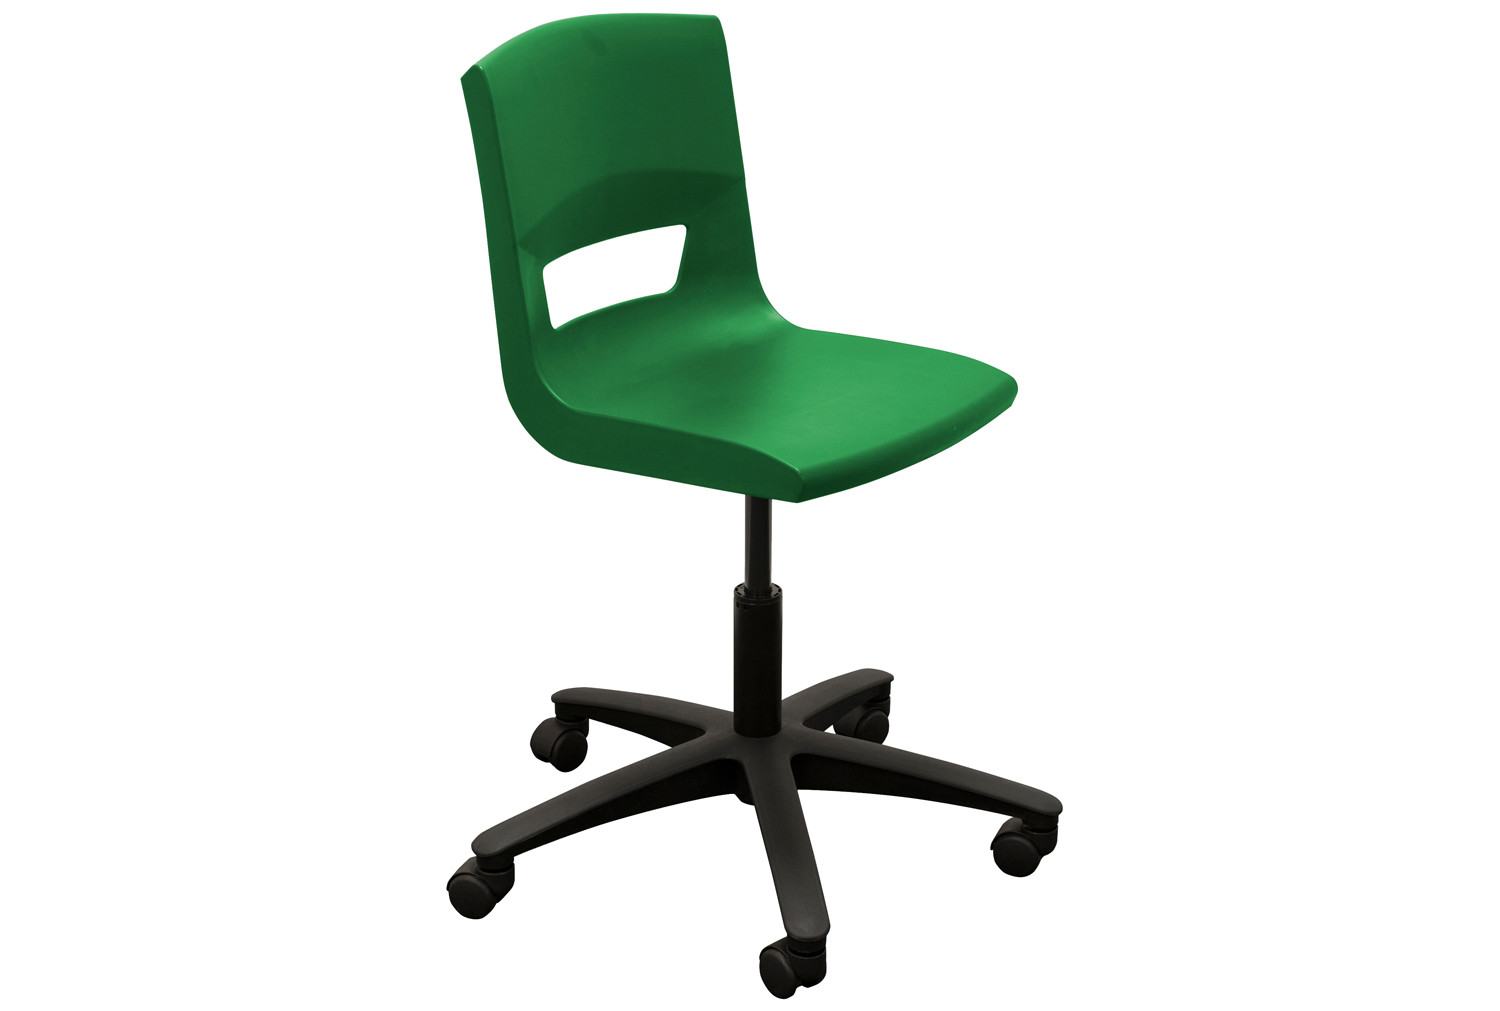 10 X Yellow Task Chair. Find Loads More Colours, Materials & Styles Online - Buy Office Furniture Online